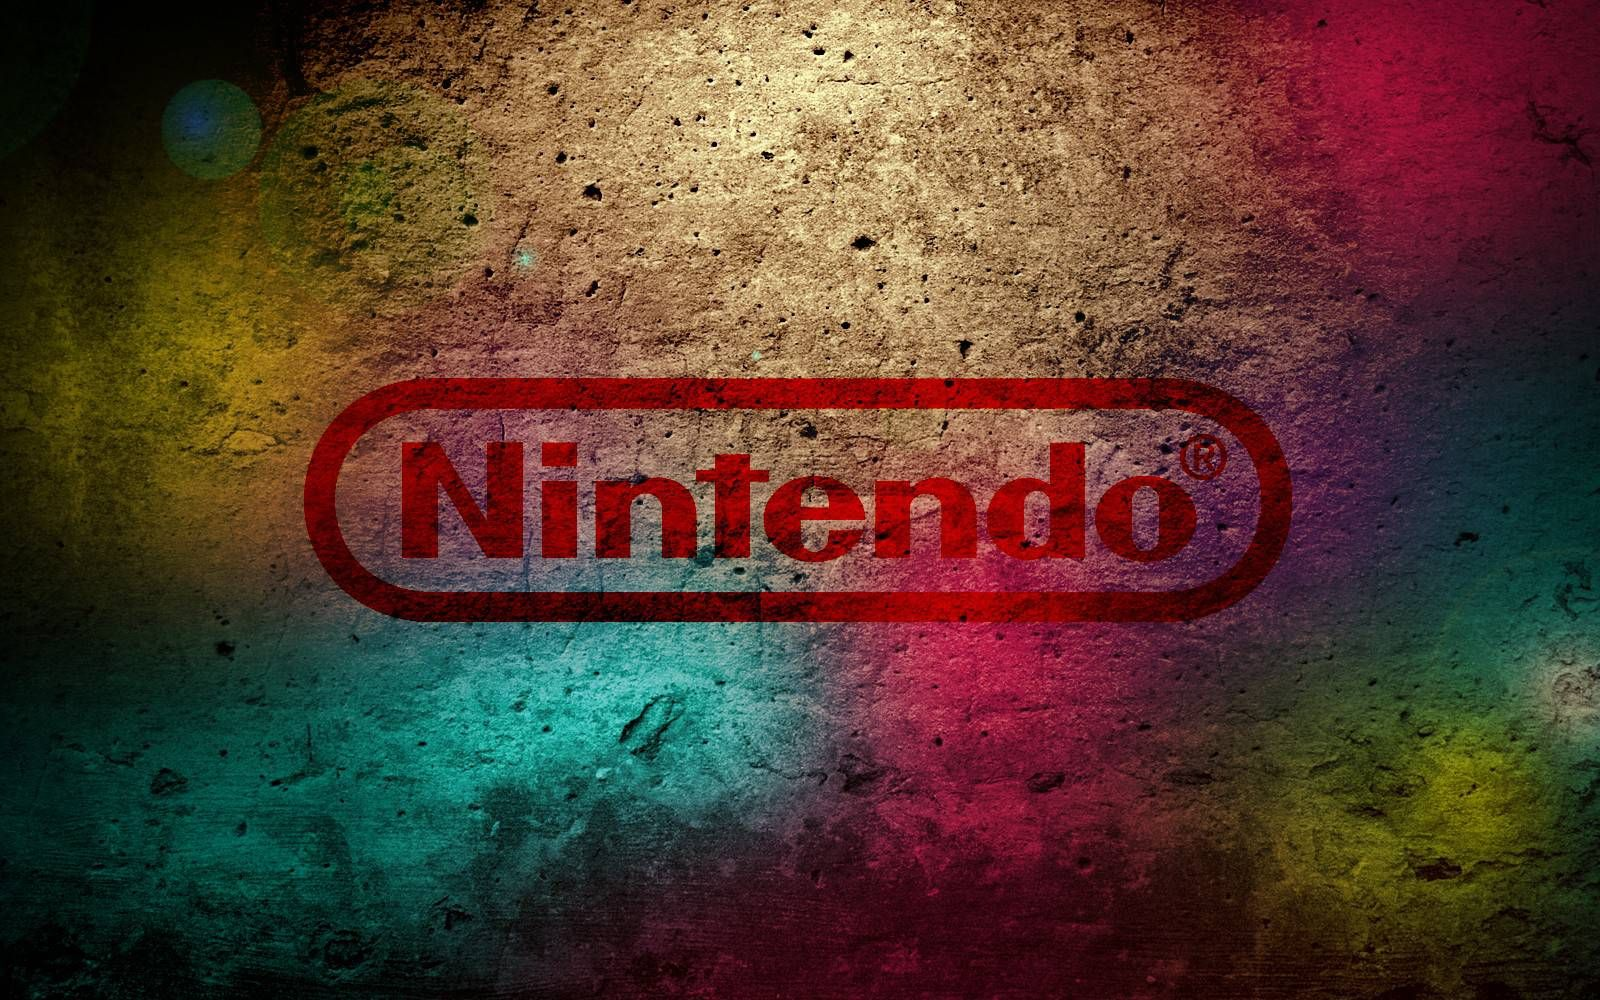 Nintendo Games July 2019 (With images